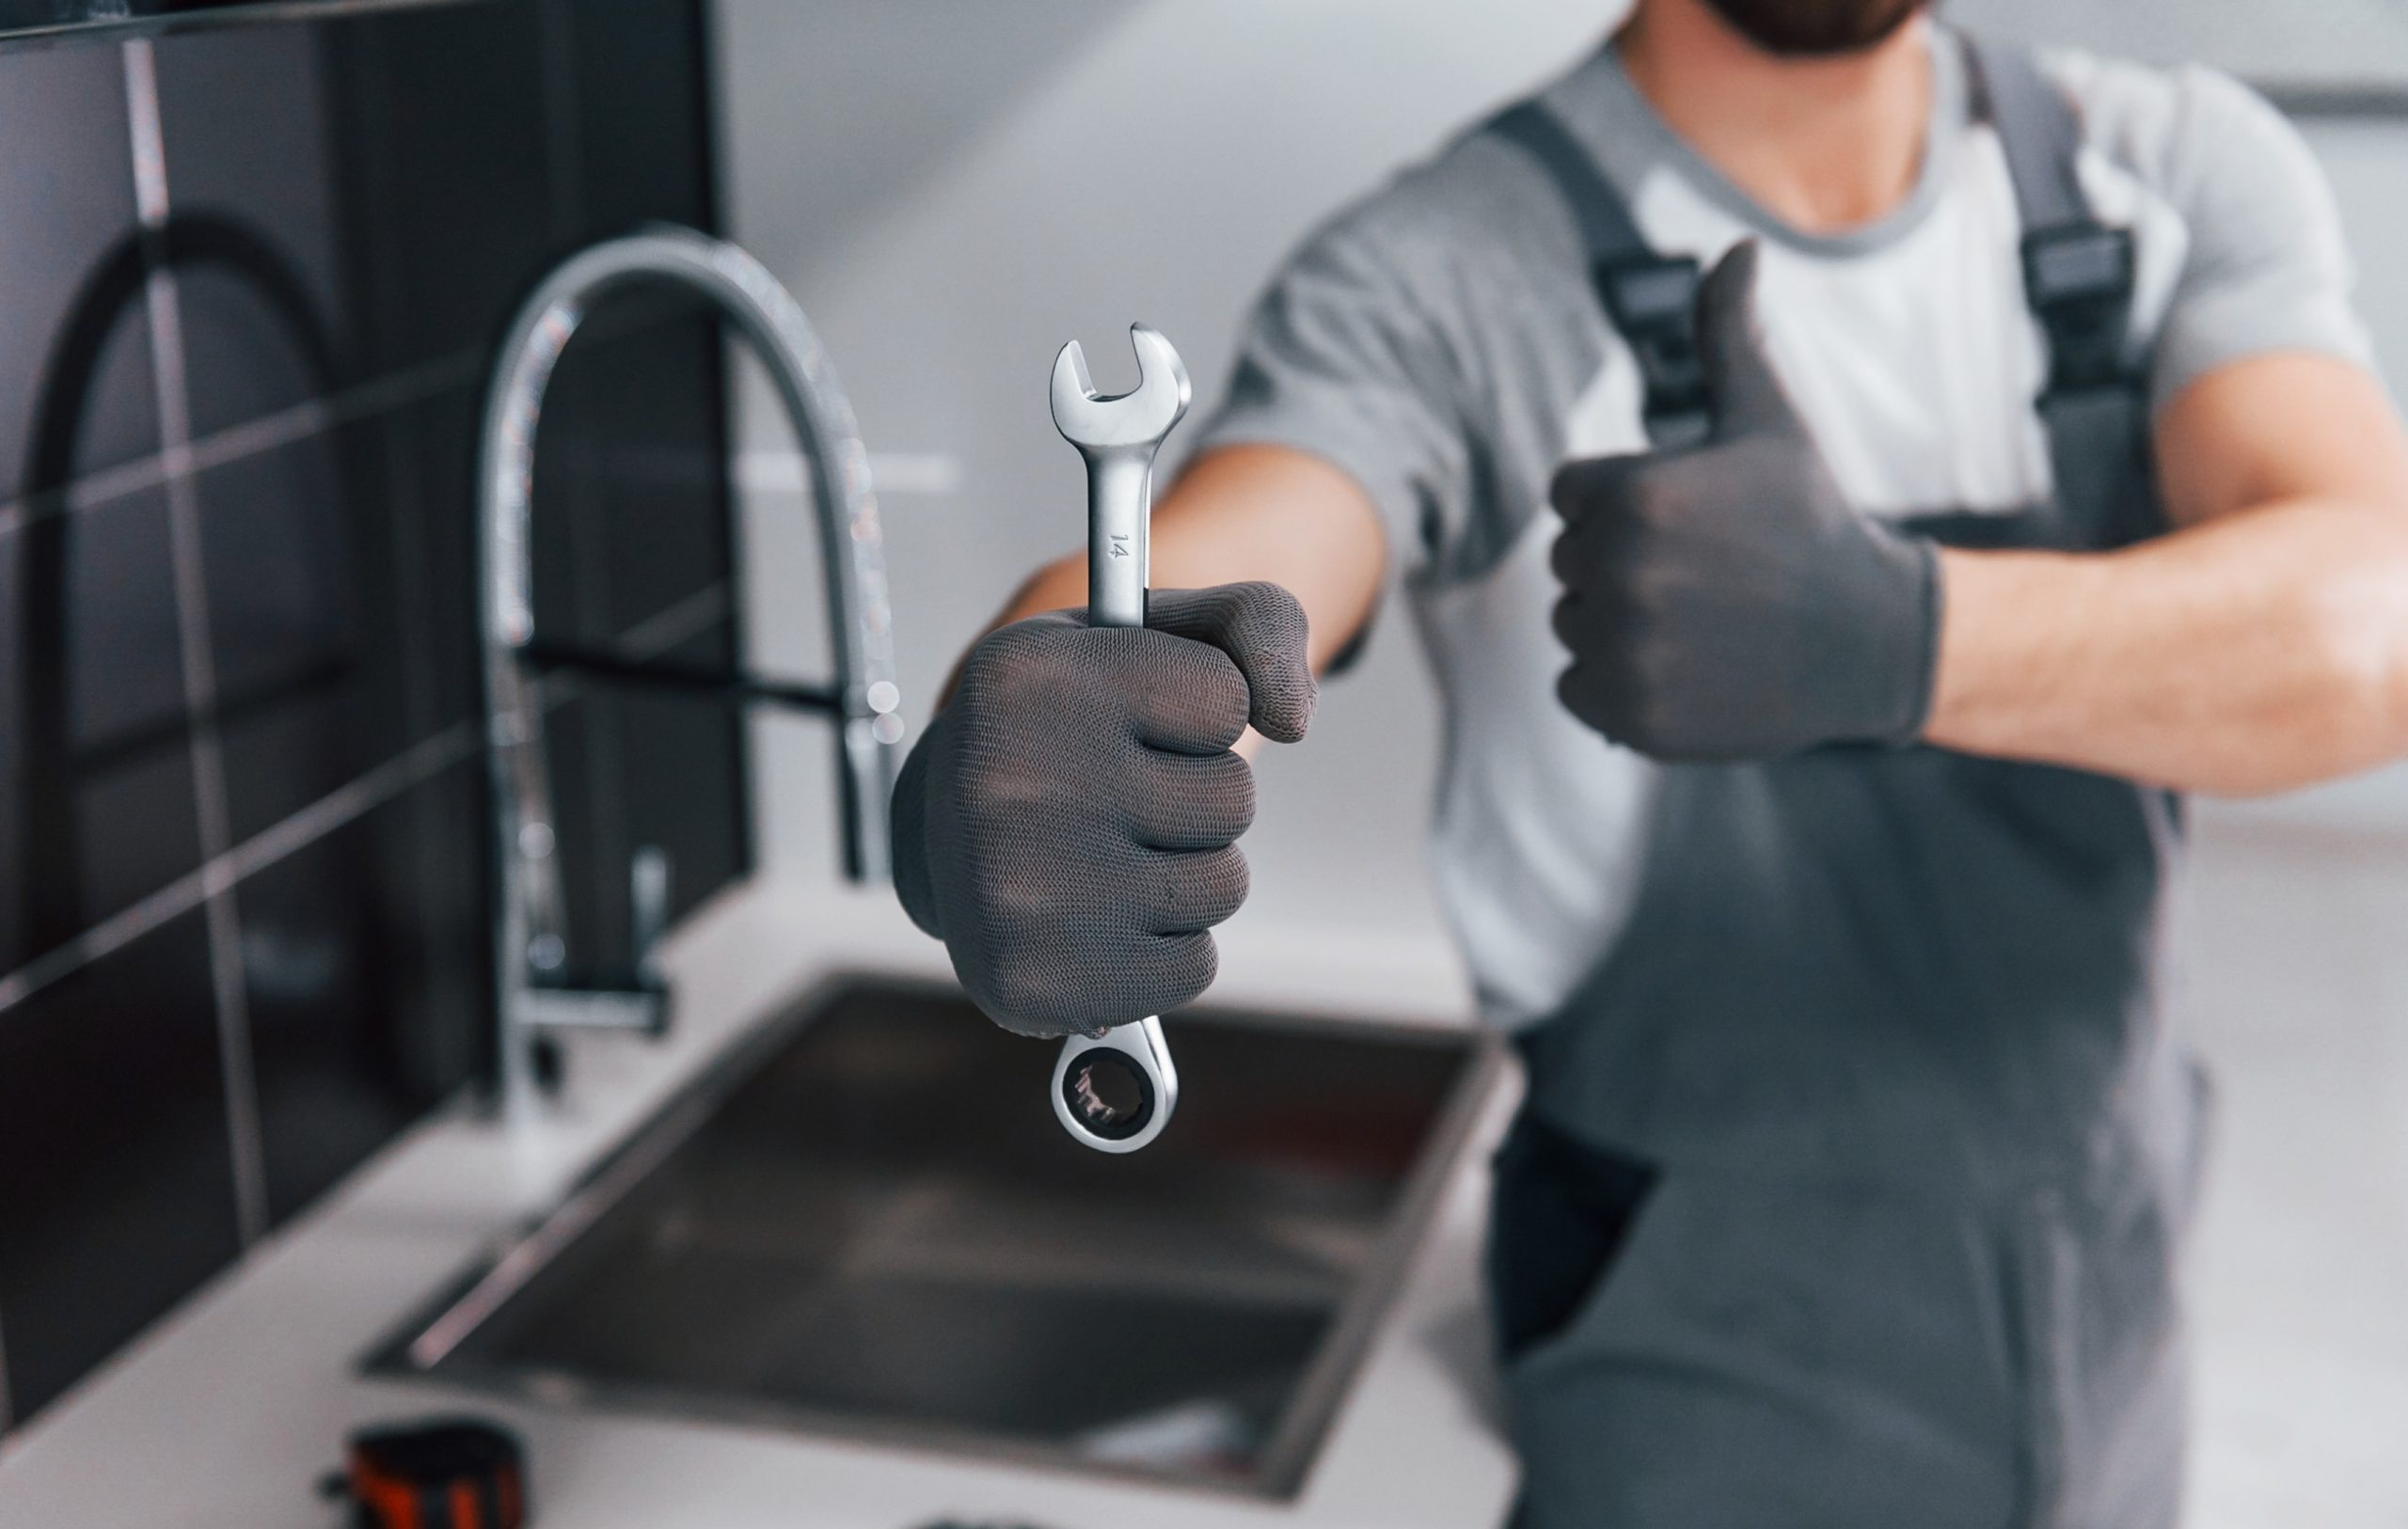 Close up view of young professional plumber in grey uniform holding wrench in hand on the kitchen